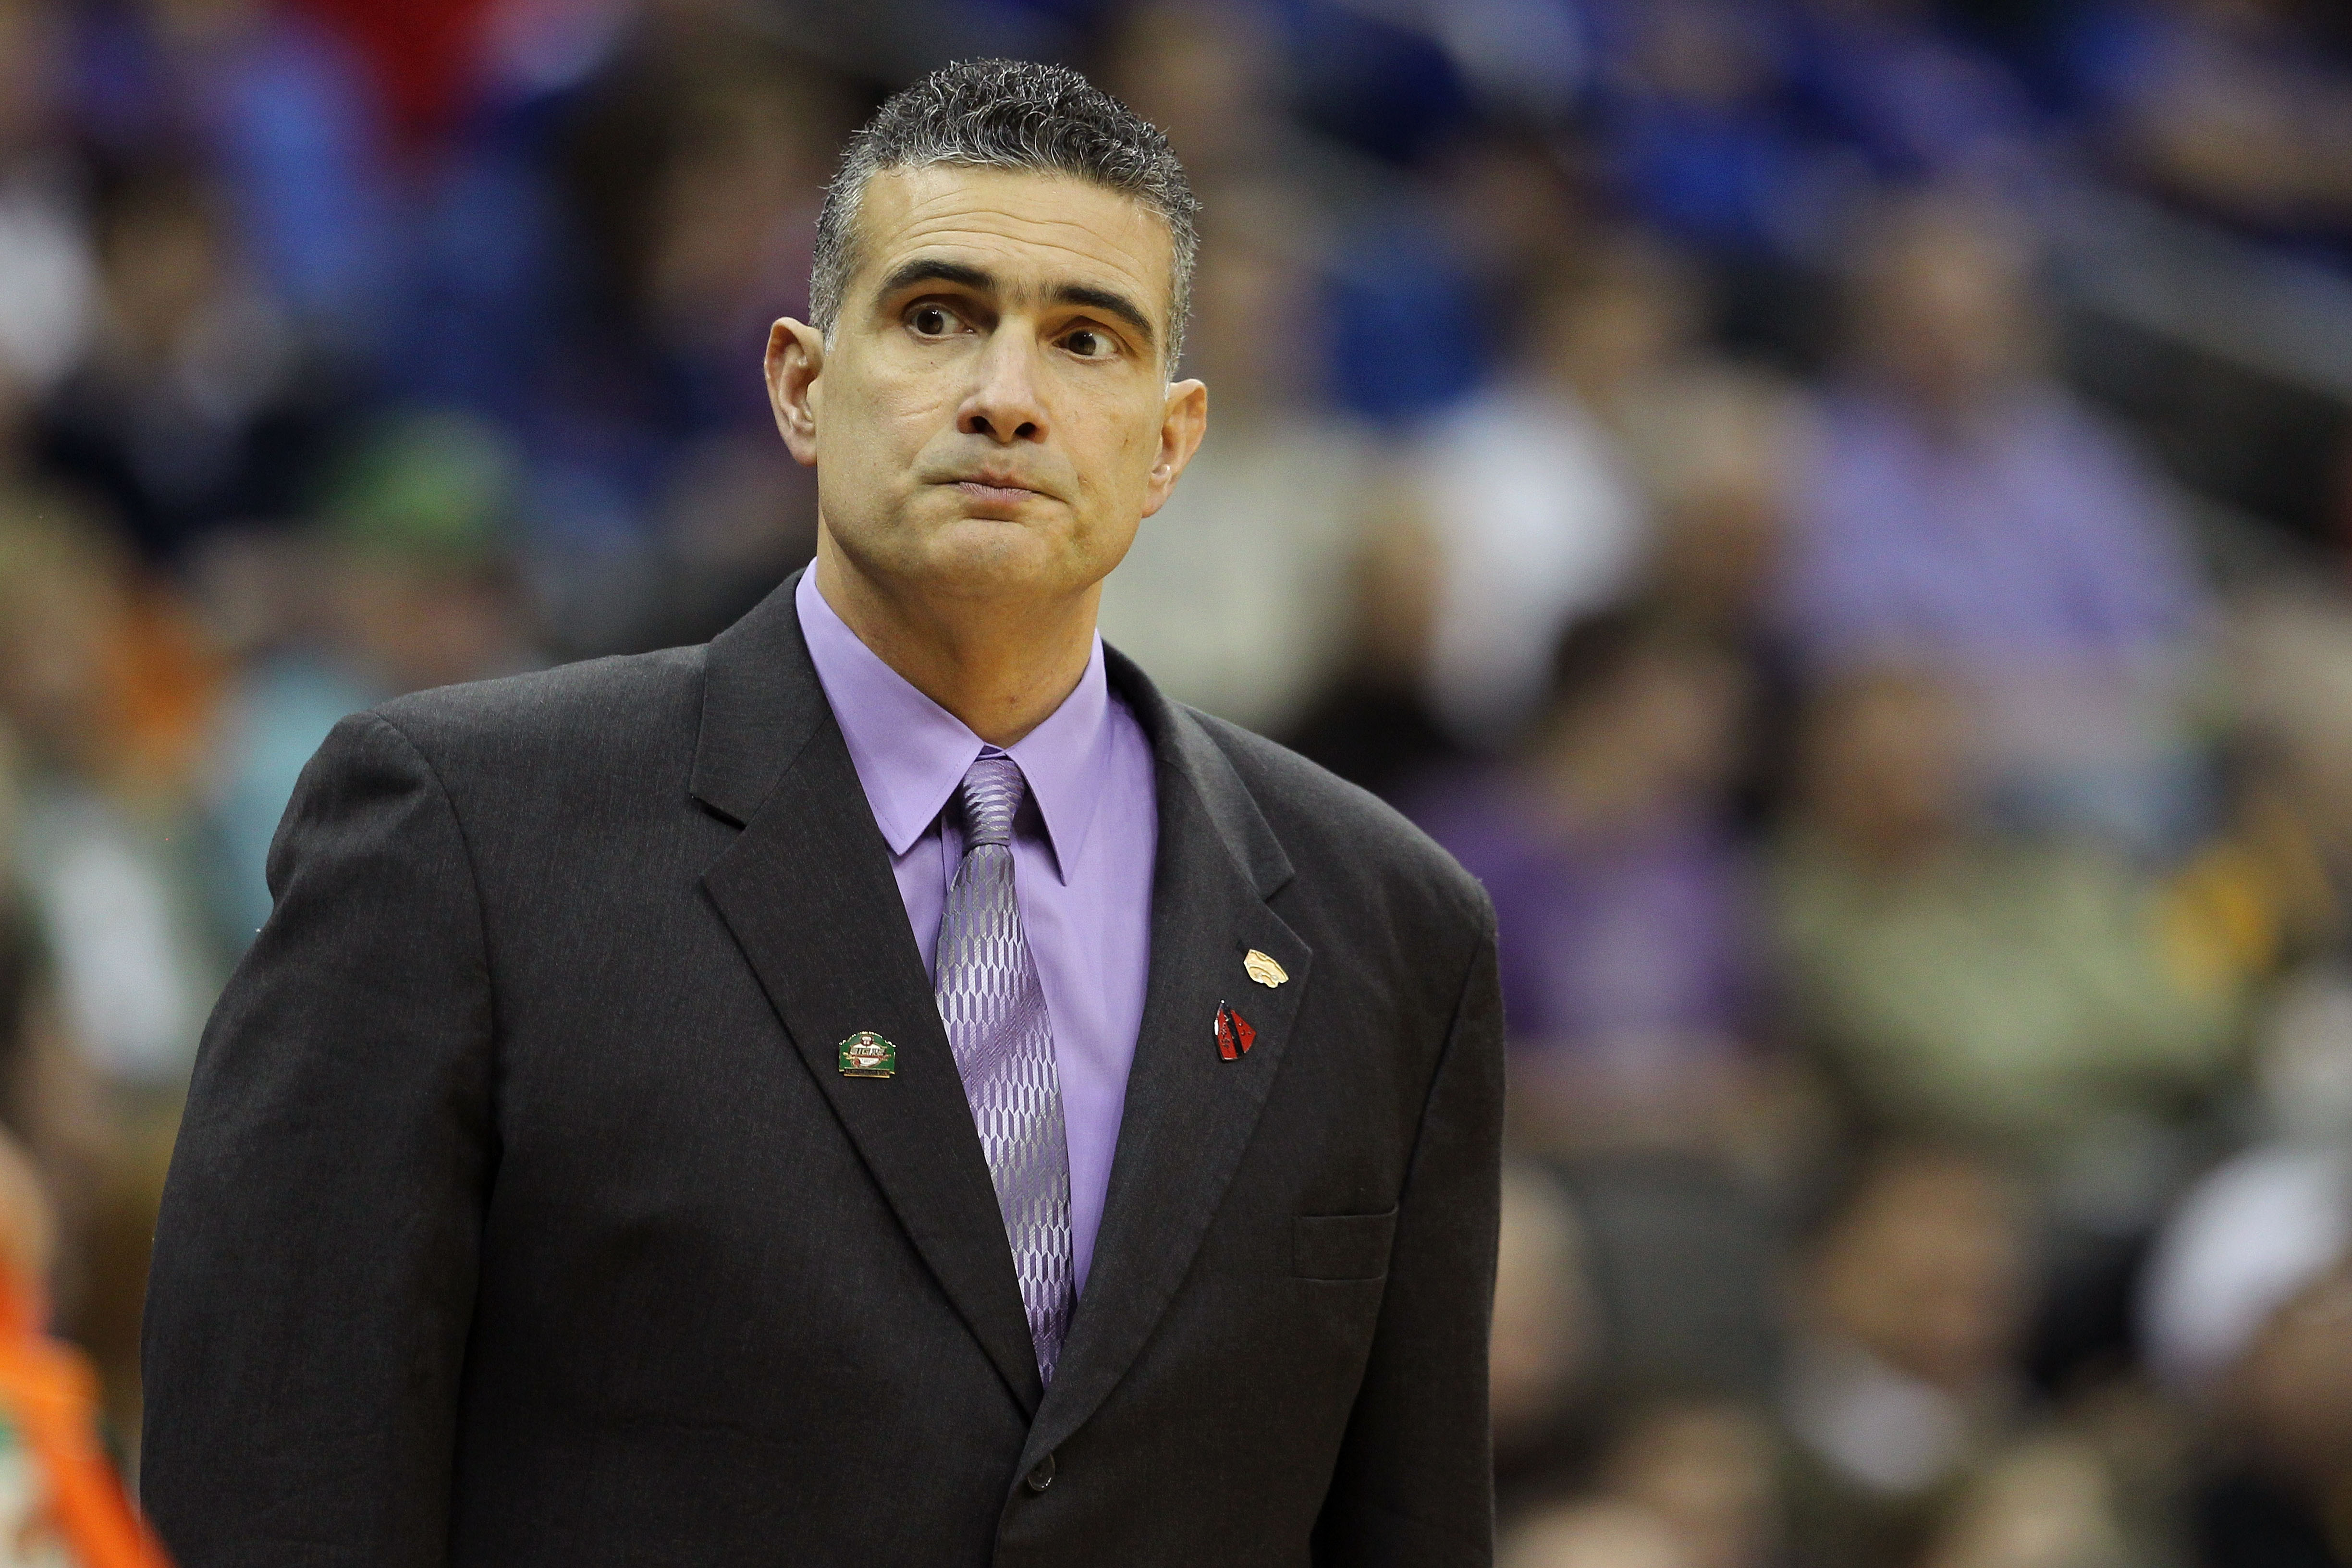 KANSAS CITY, MO - MARCH 10:  Head coach Frank Martin of the Kansas State Wildcats looks on during their quarterfinal game against the Colorado Buffaloes in the 2011 Phillips 66 Big 12 Men's Basketball Tournament at Sprint Center on March 10, 2011 in Kansa